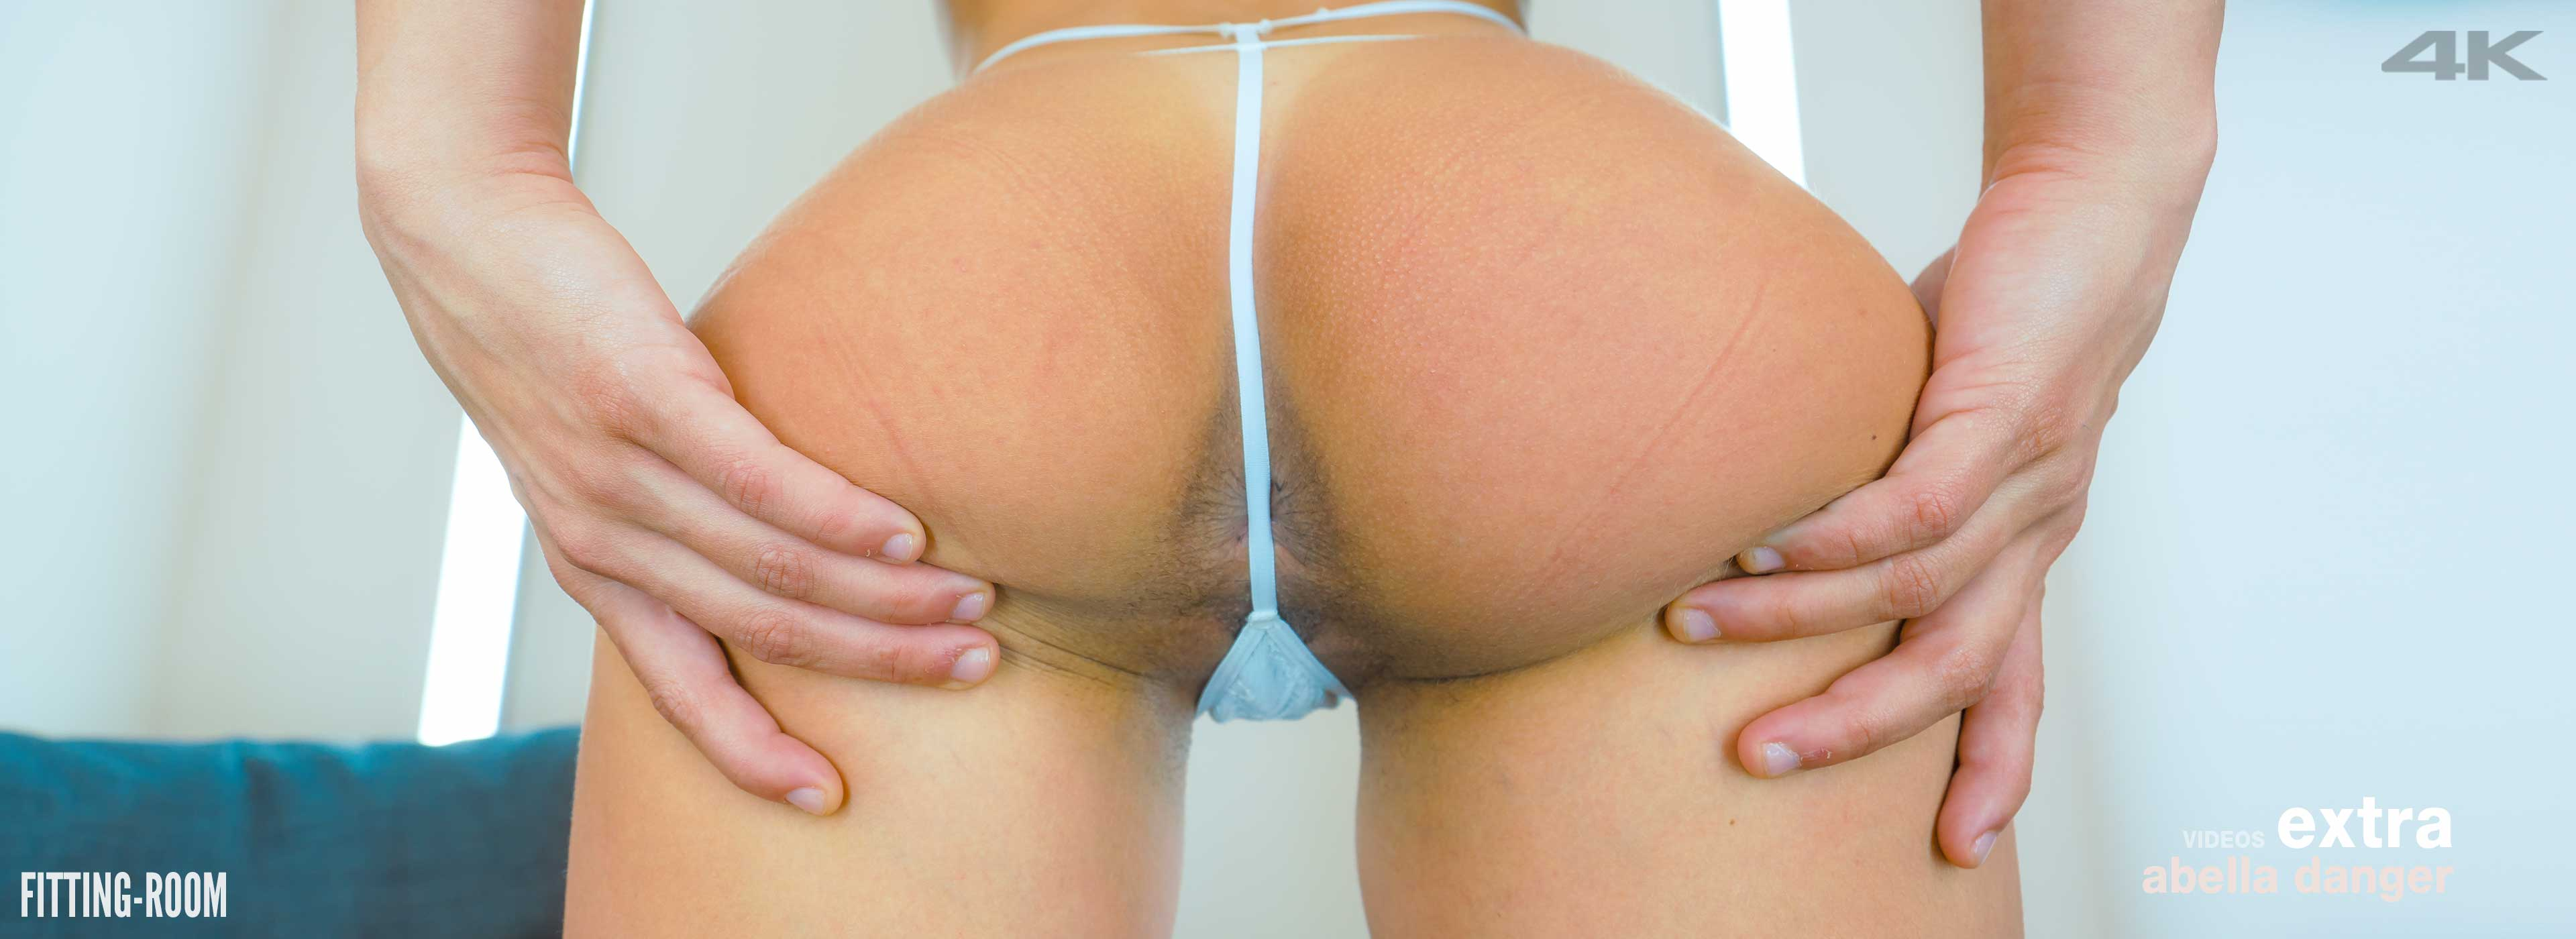 Abella Danger shows off her gaping ass while in the fitting-room showing off that sexy ass in this upskirt viseo.